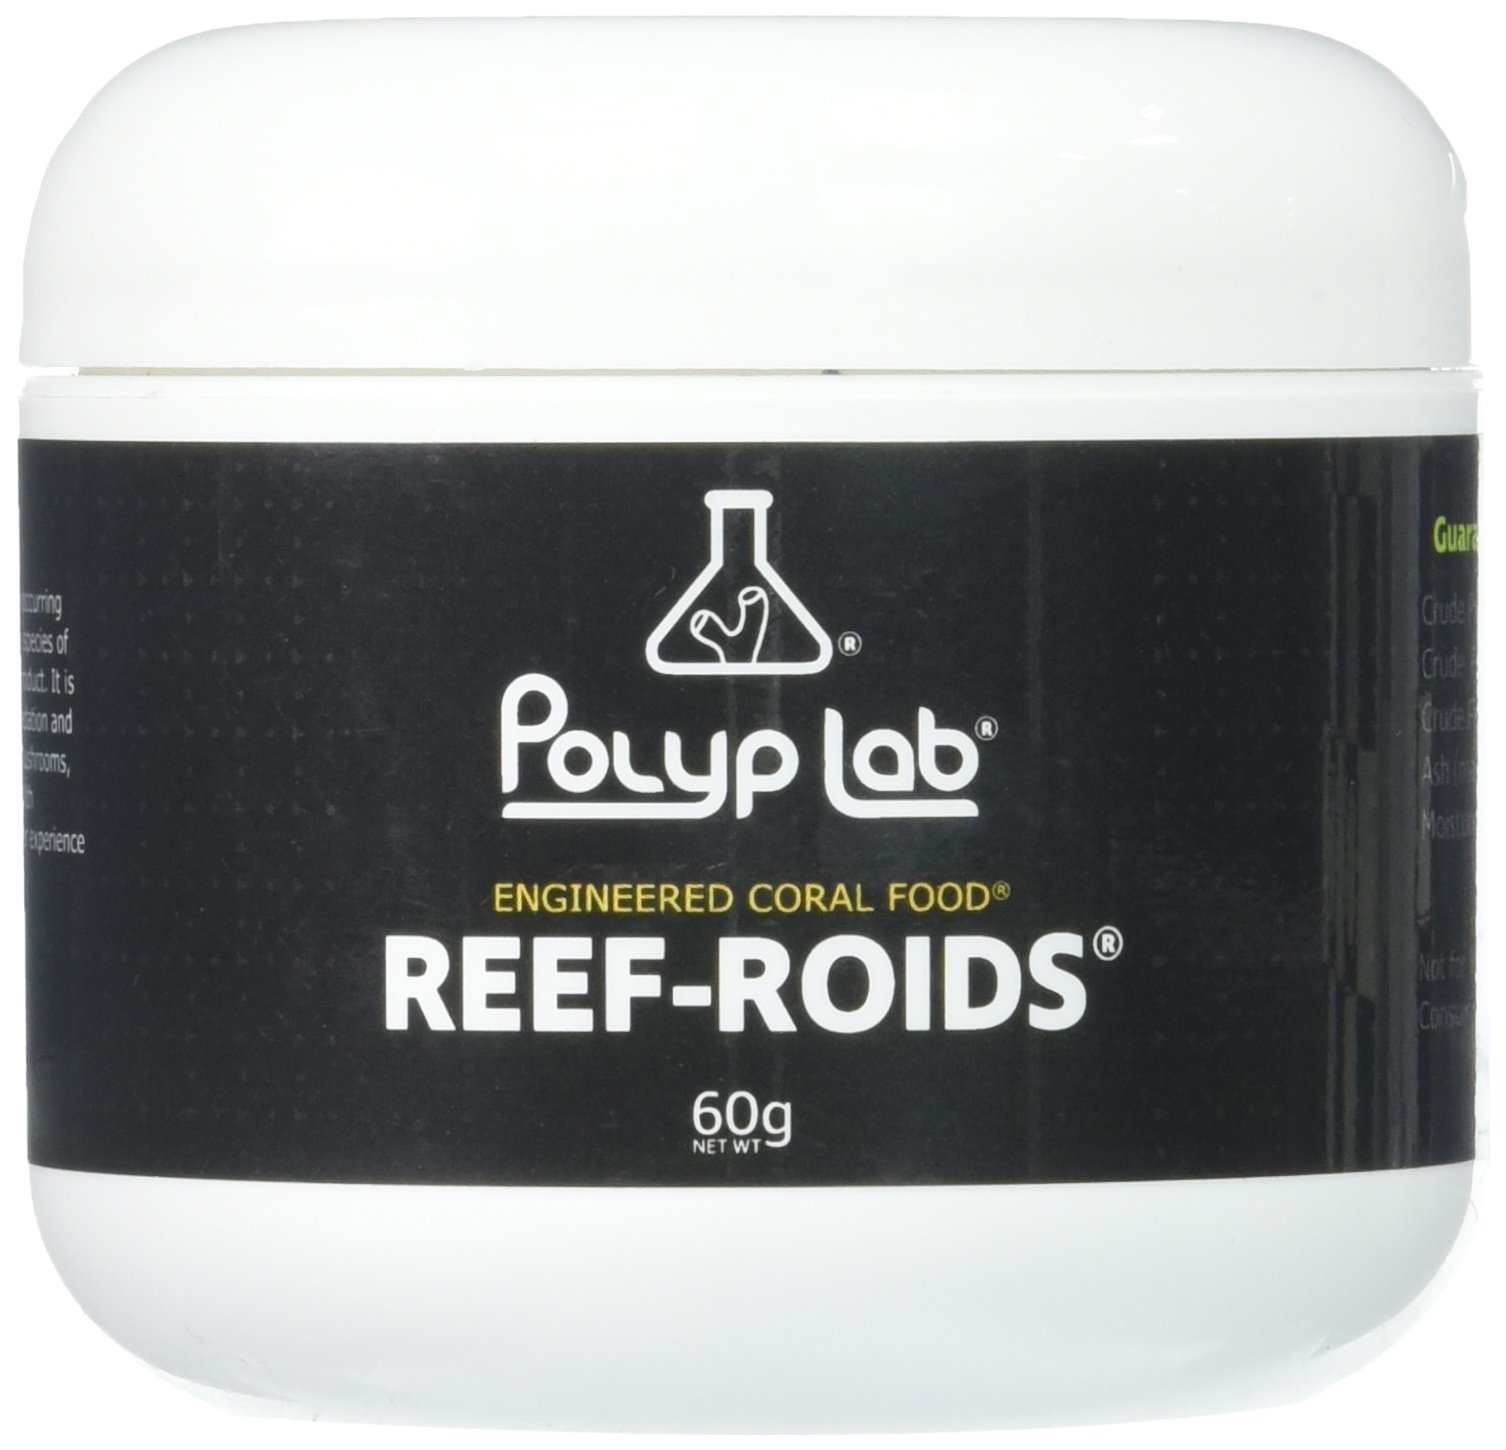 Polyplab - Reef-Roids- Coral Food For Faster Growing - 60g by Polyplab (Image #1)